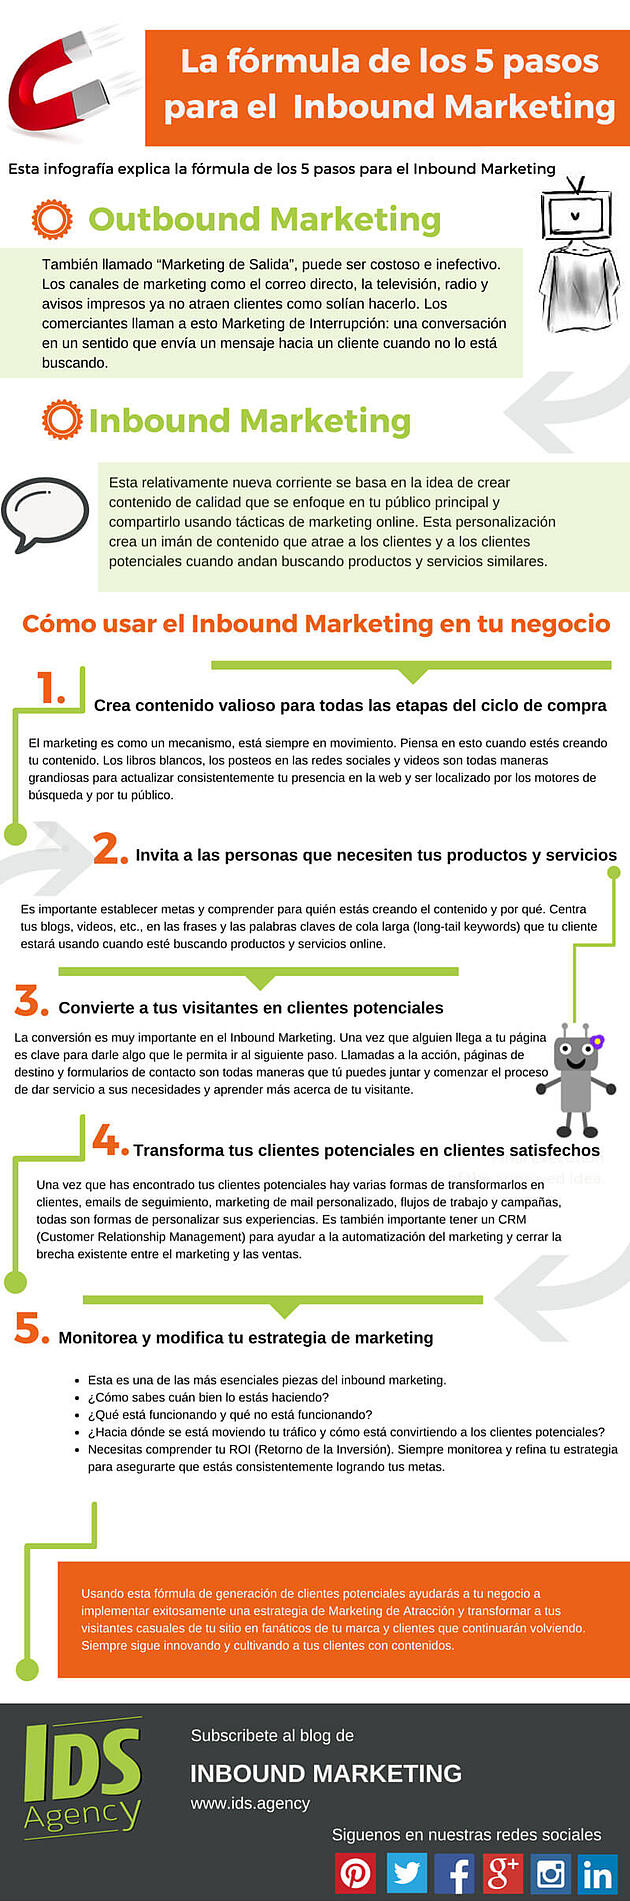 La fórmula de los 5 pasos para el Inbound Marketing